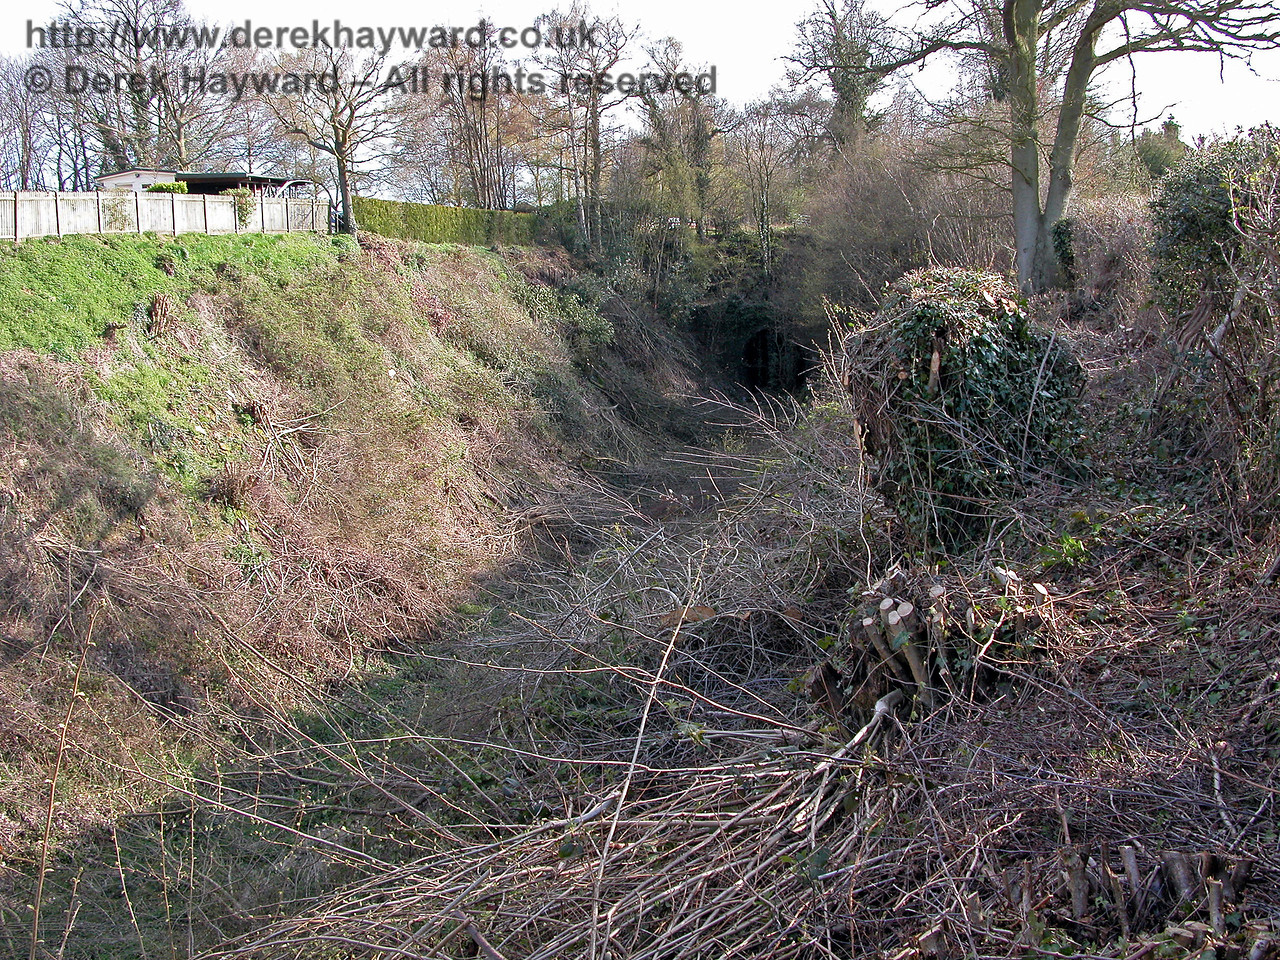 The northern portal of Horsmonden Tunnel, pictured after works were undertaken to clear scrub from the cutting.  The southern end of this tunnel has been almost totally infilled and the tunnel and cutting are a dangerous environment.  12.04.2004